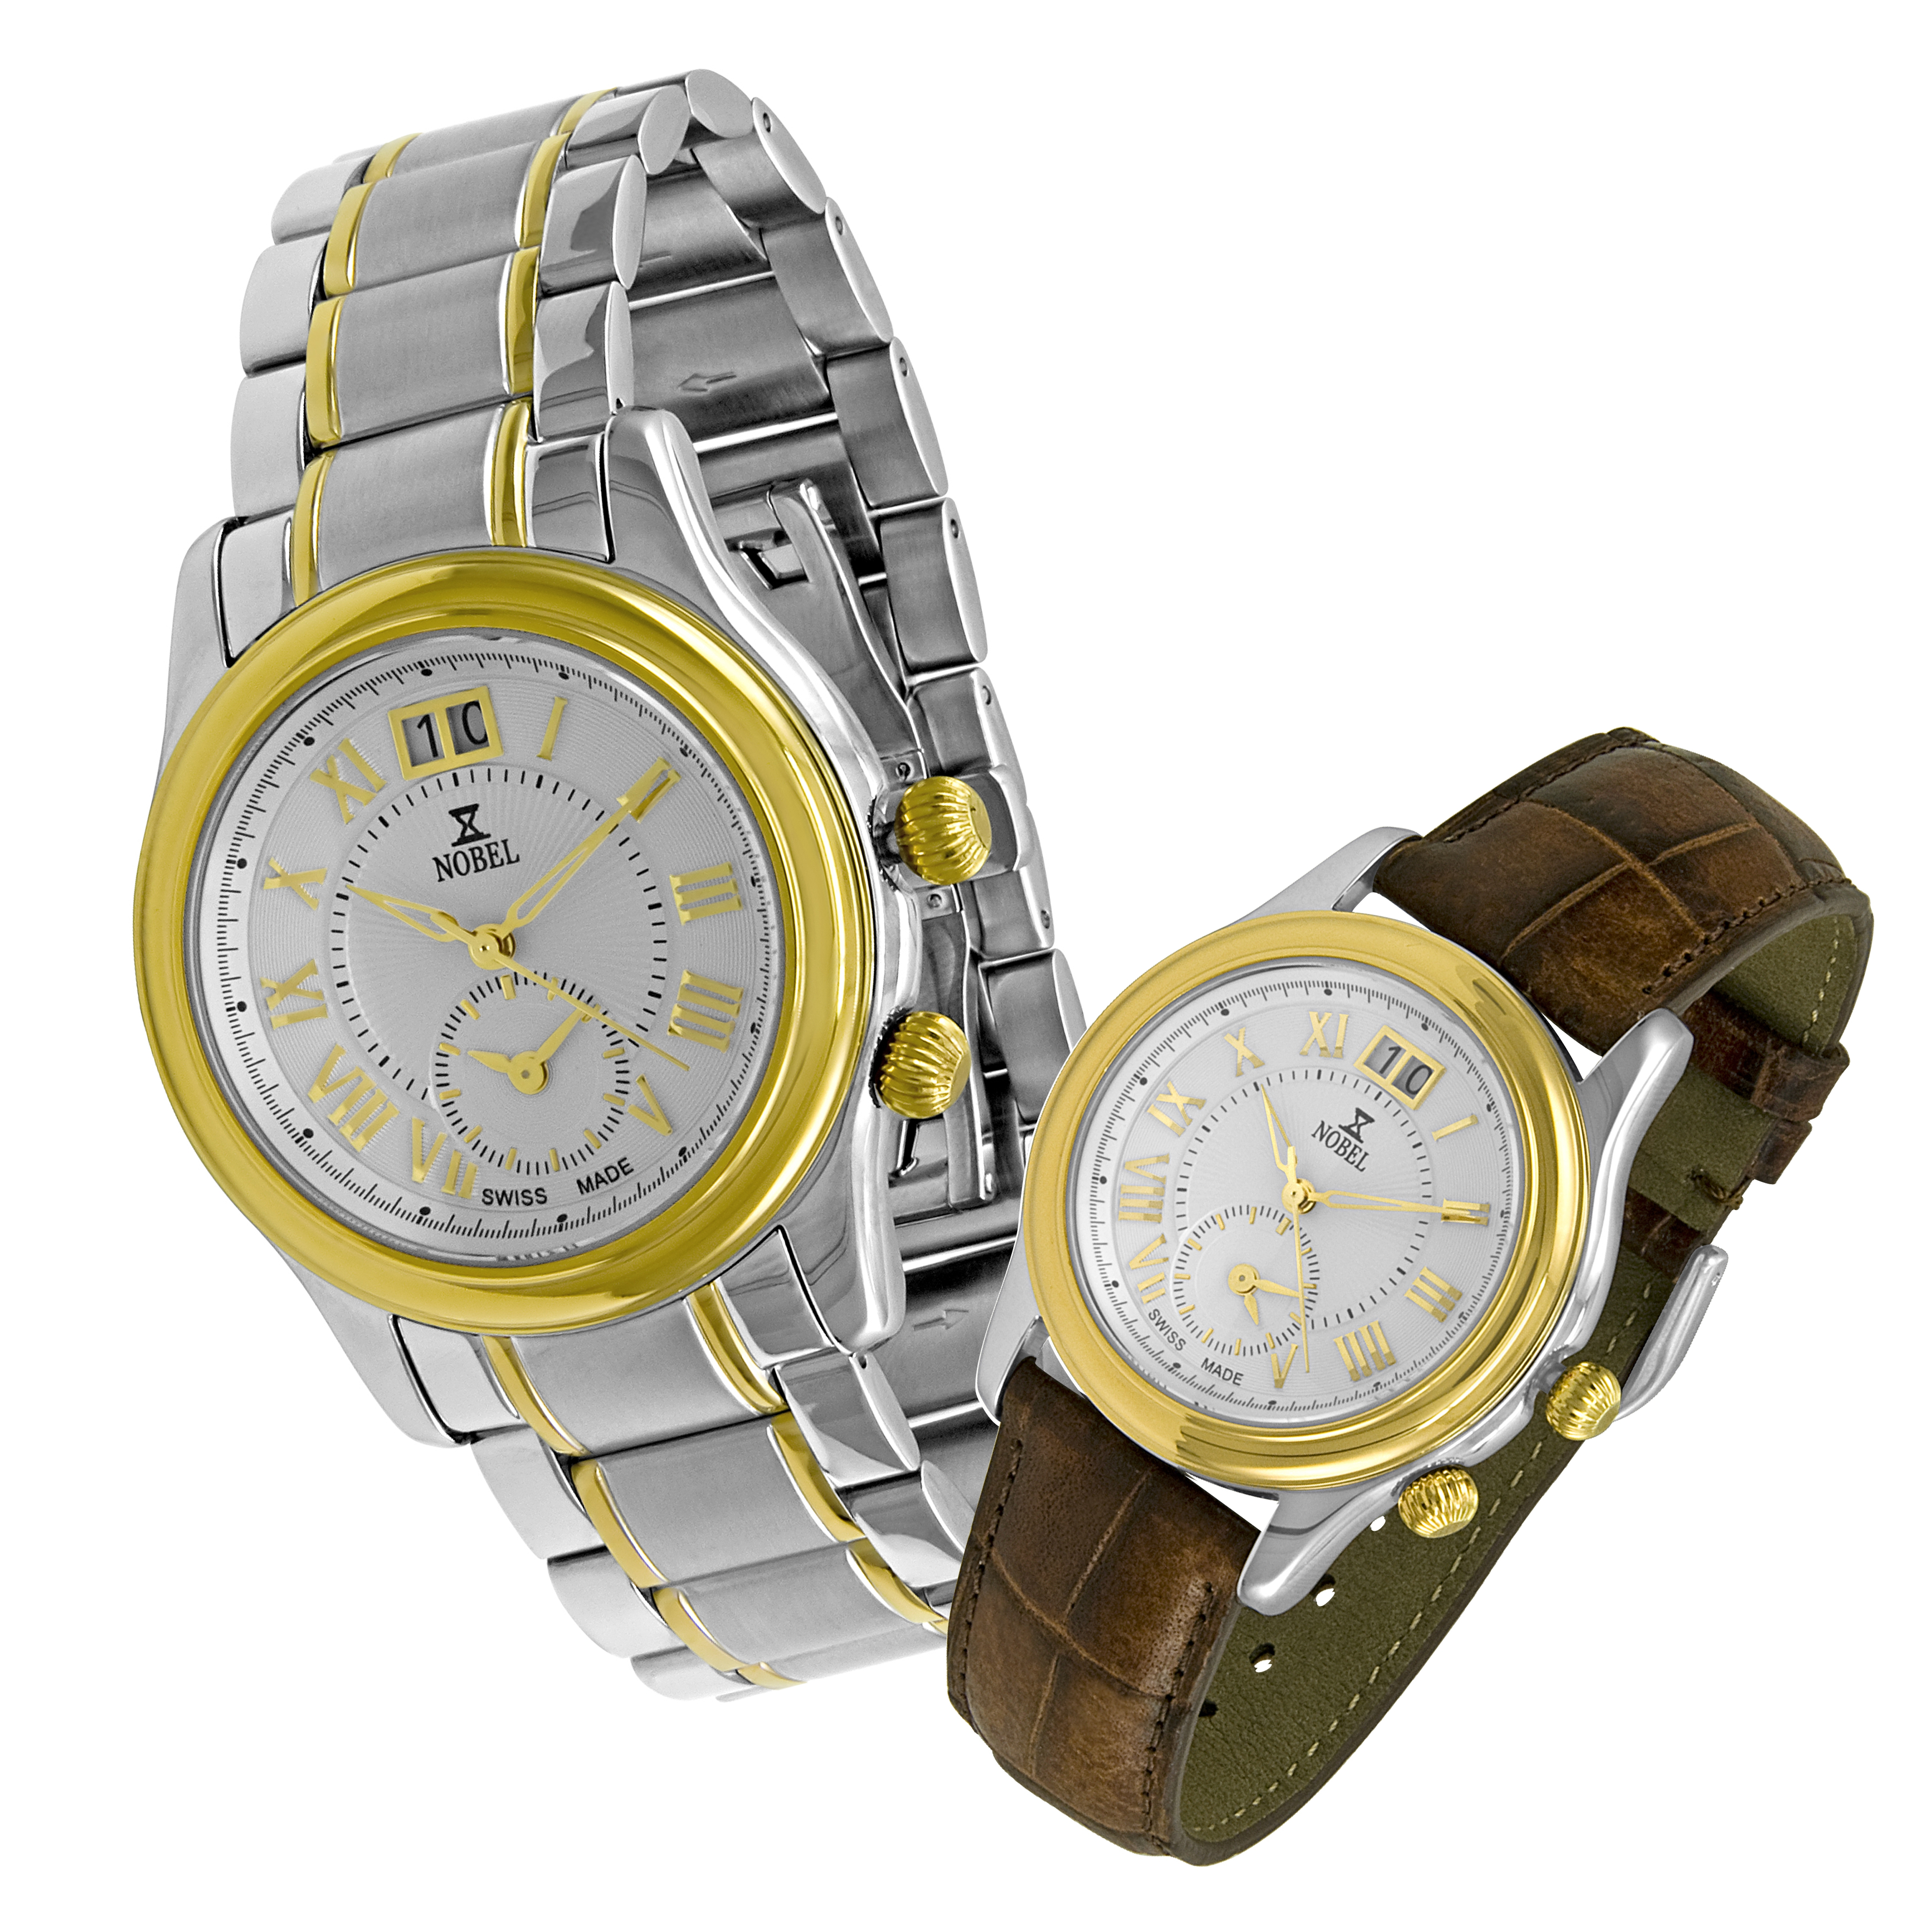 Branded Watches Available